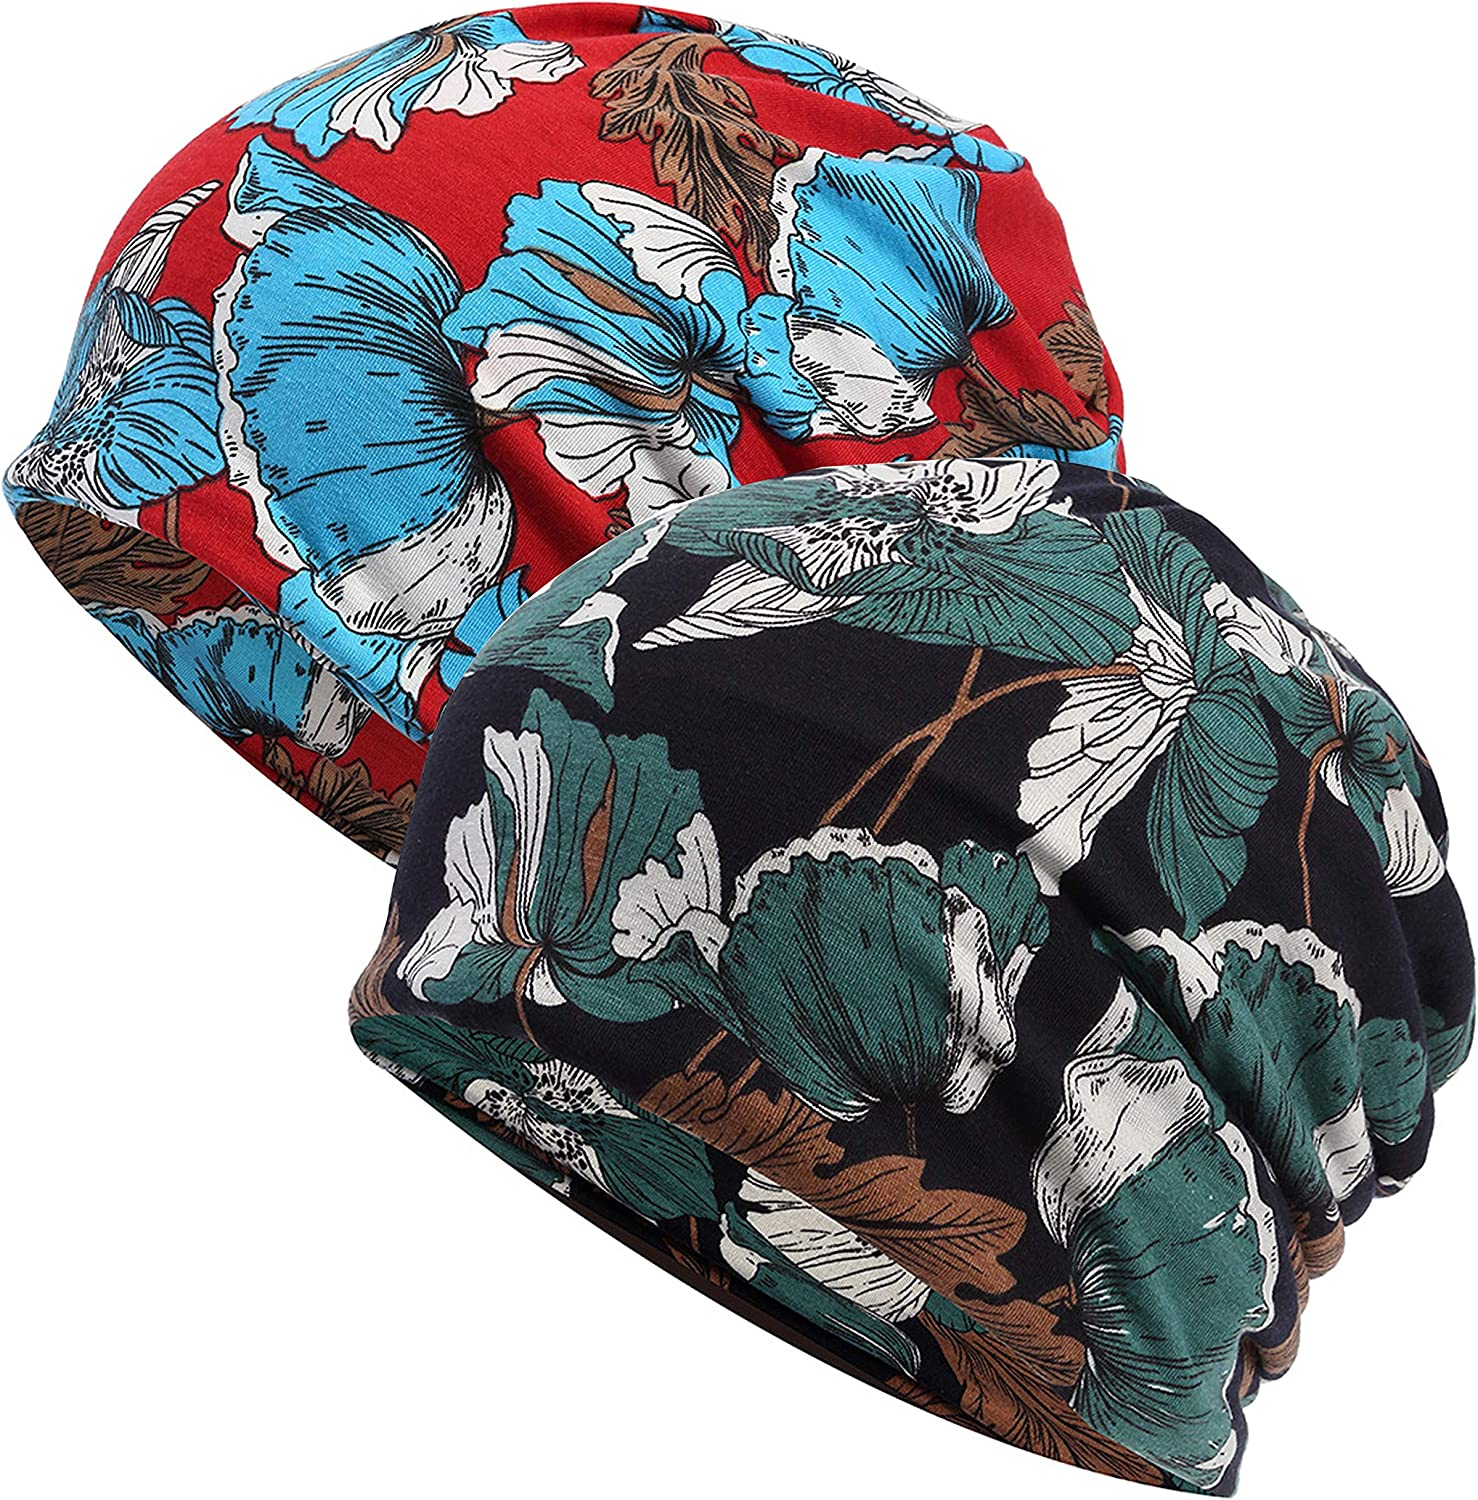 Jemis Skullies Beanies specialty shop Thin Bonnet Infinity Cap Chemo High material Hat Scarf